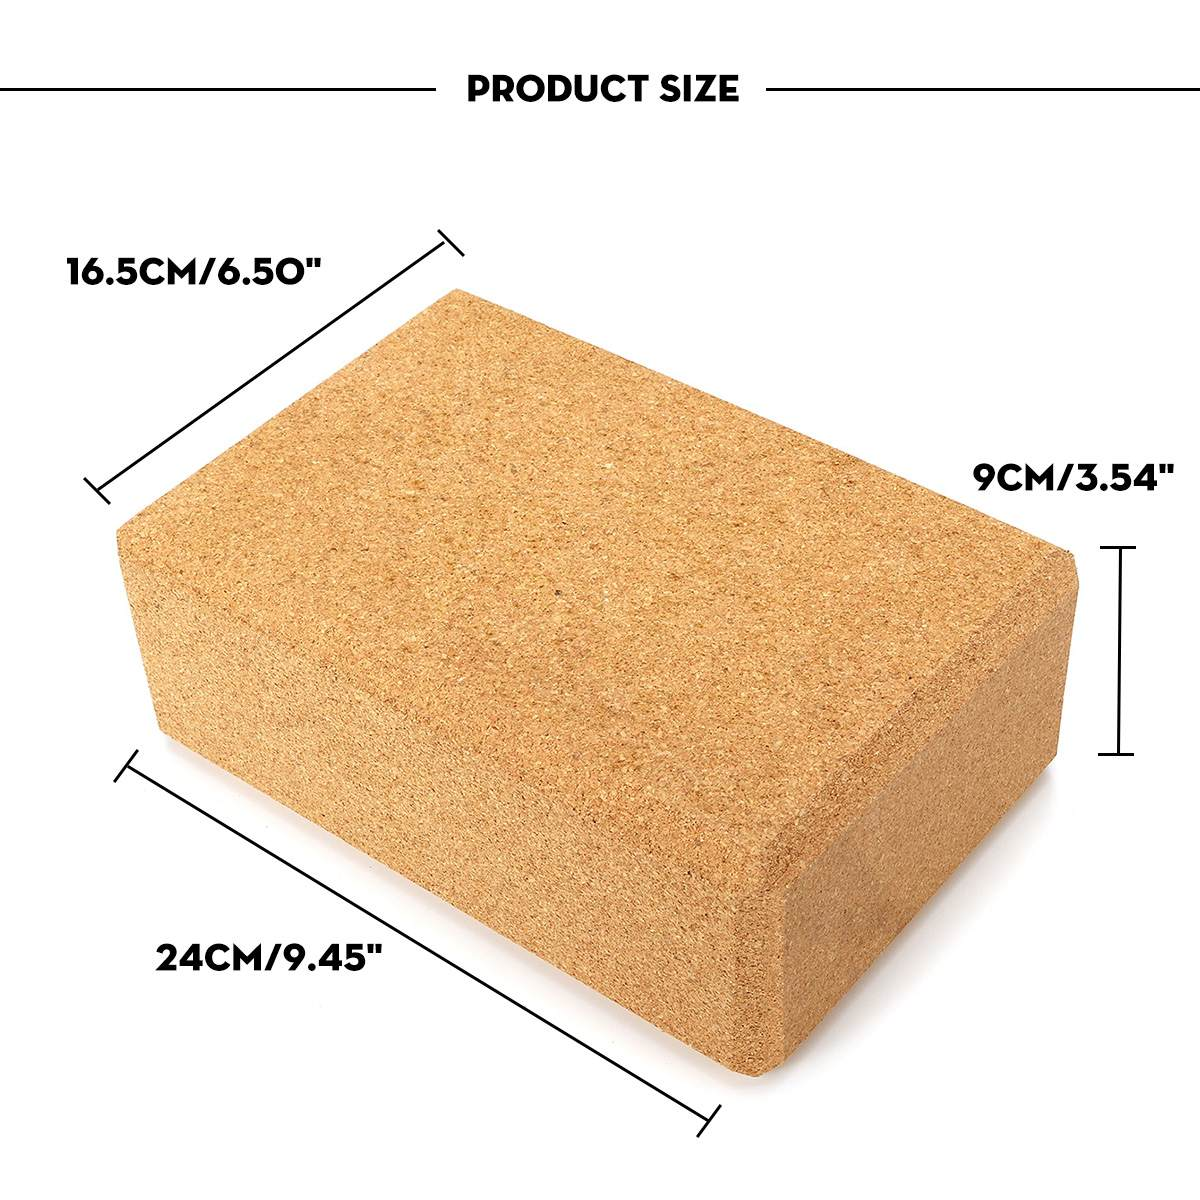 High Density Cork Yoga Block Pilates Brick Fitness for Exercise Workout Fitness Training Block Brick 16.5cm x 24cm x 9cm